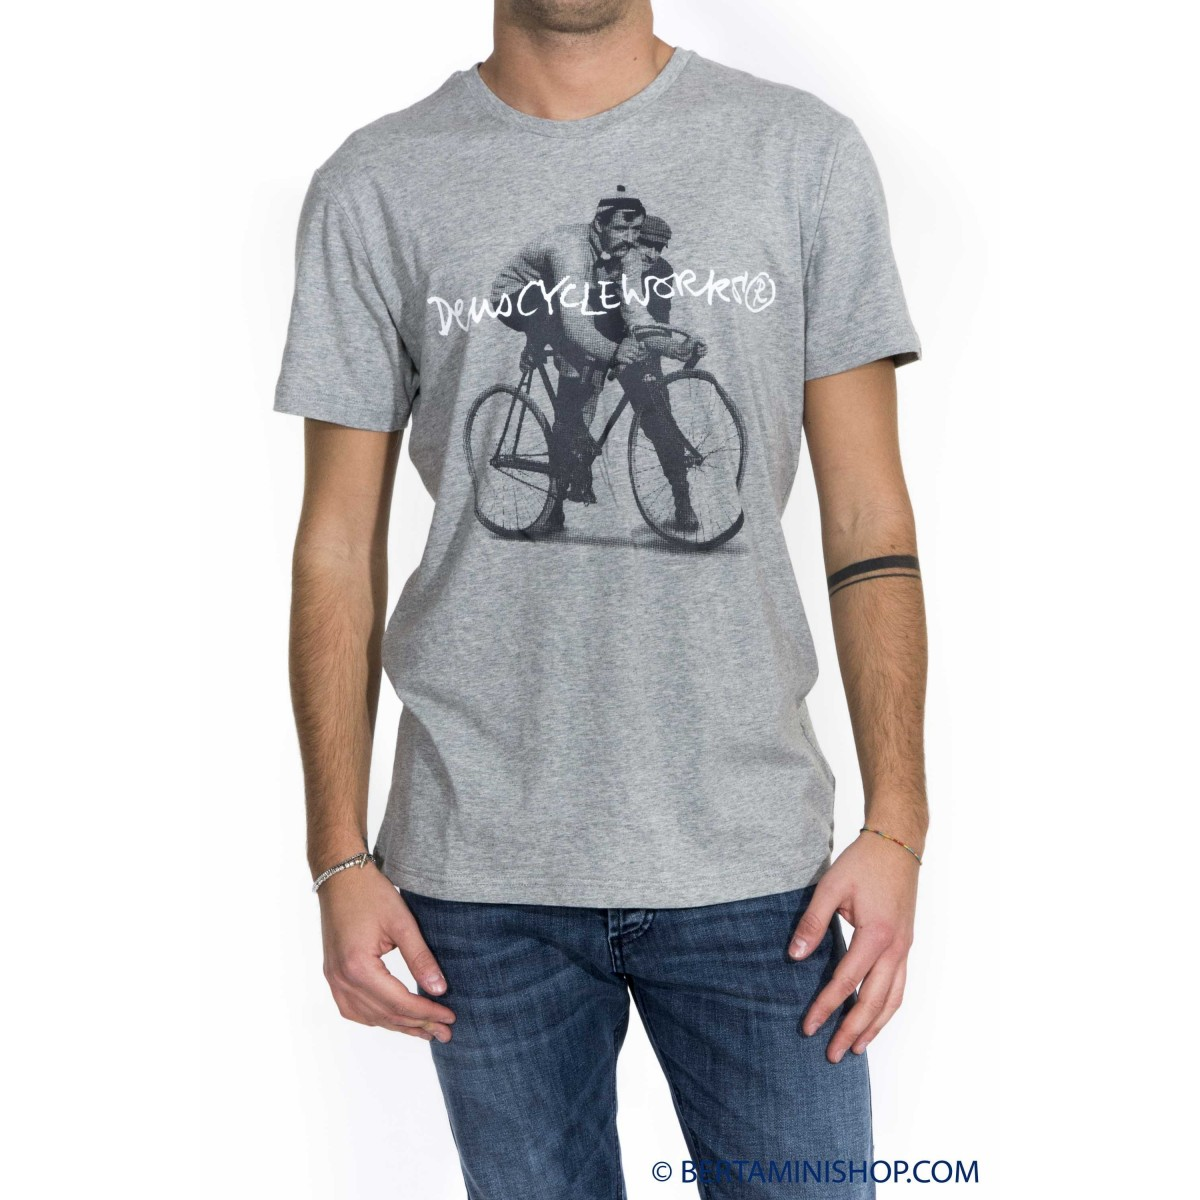 T-shirt uomo Deus ex machina - Dms51614c